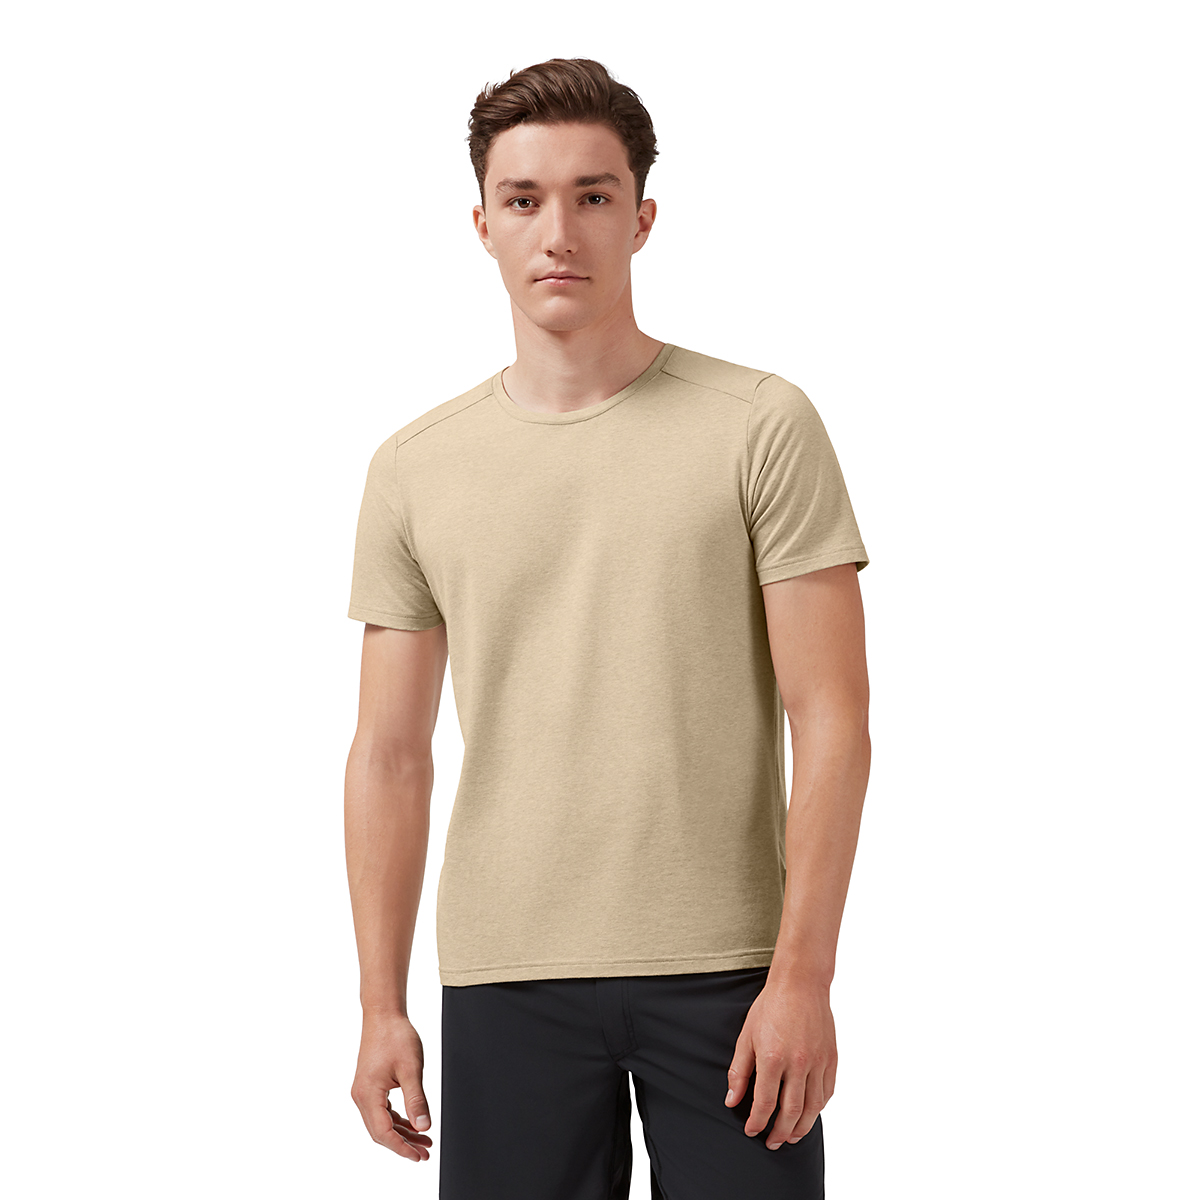 Men's On On-T Short Sleeve Shirt - Color: Camel - Size: XS, Camel, large, image 1